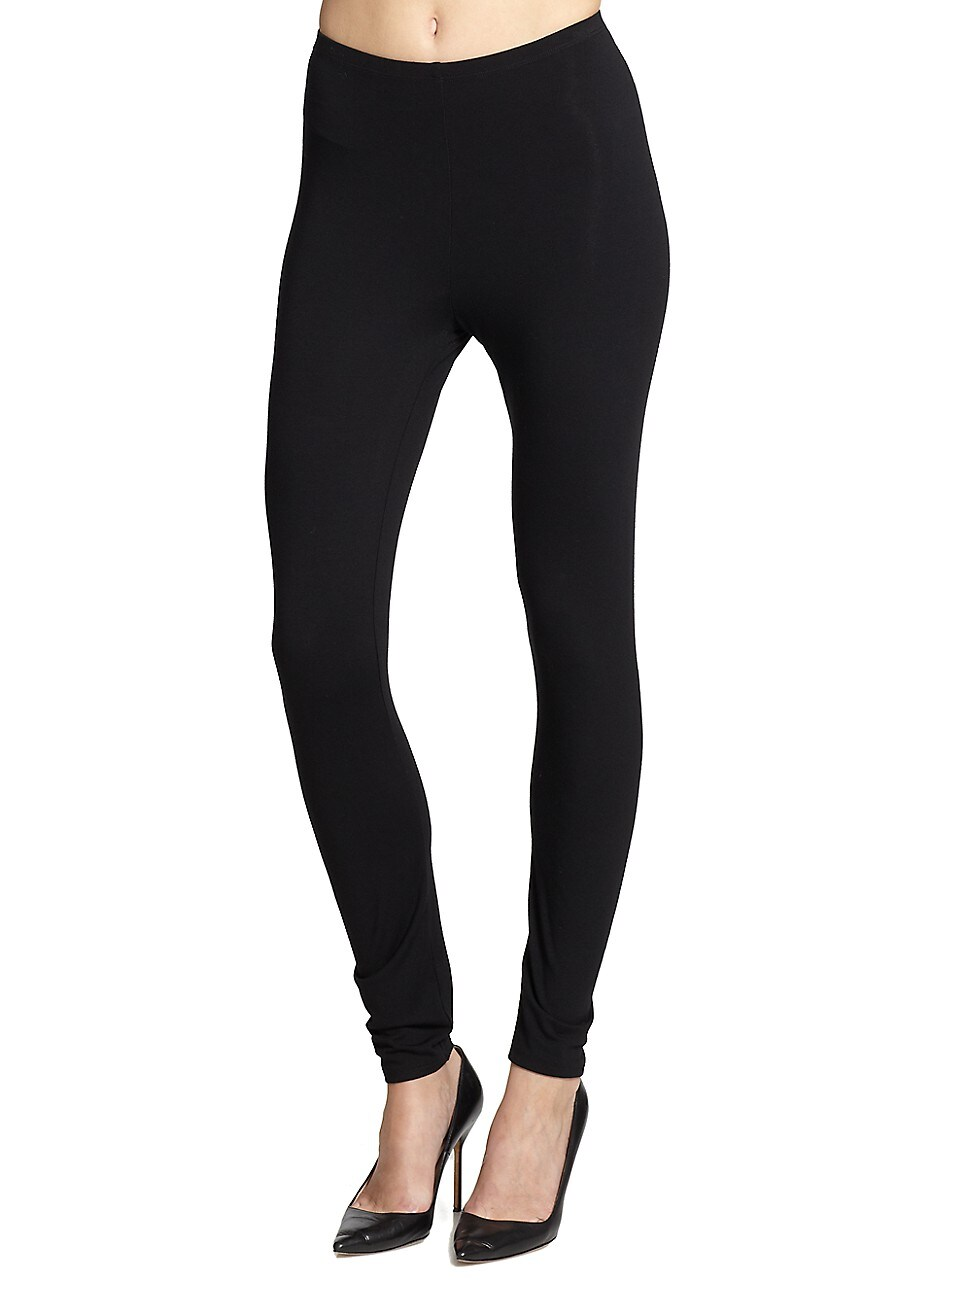 Eileen Fisher WOMEN'S ANKLE-LENGTH LEGGINGS